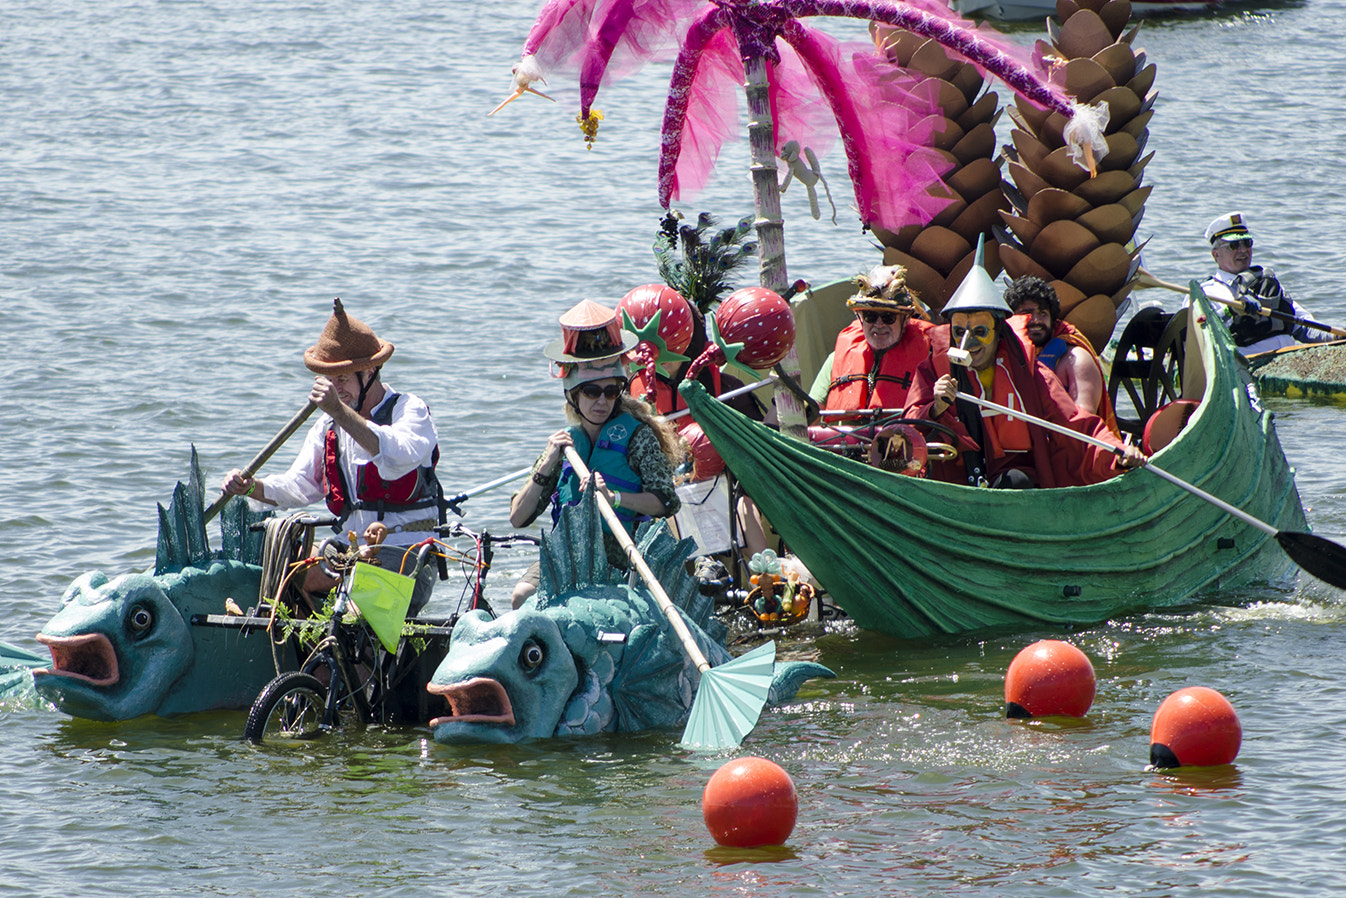 Photograph Kinetic Sculpture Race 1 by André Barnett on 500px